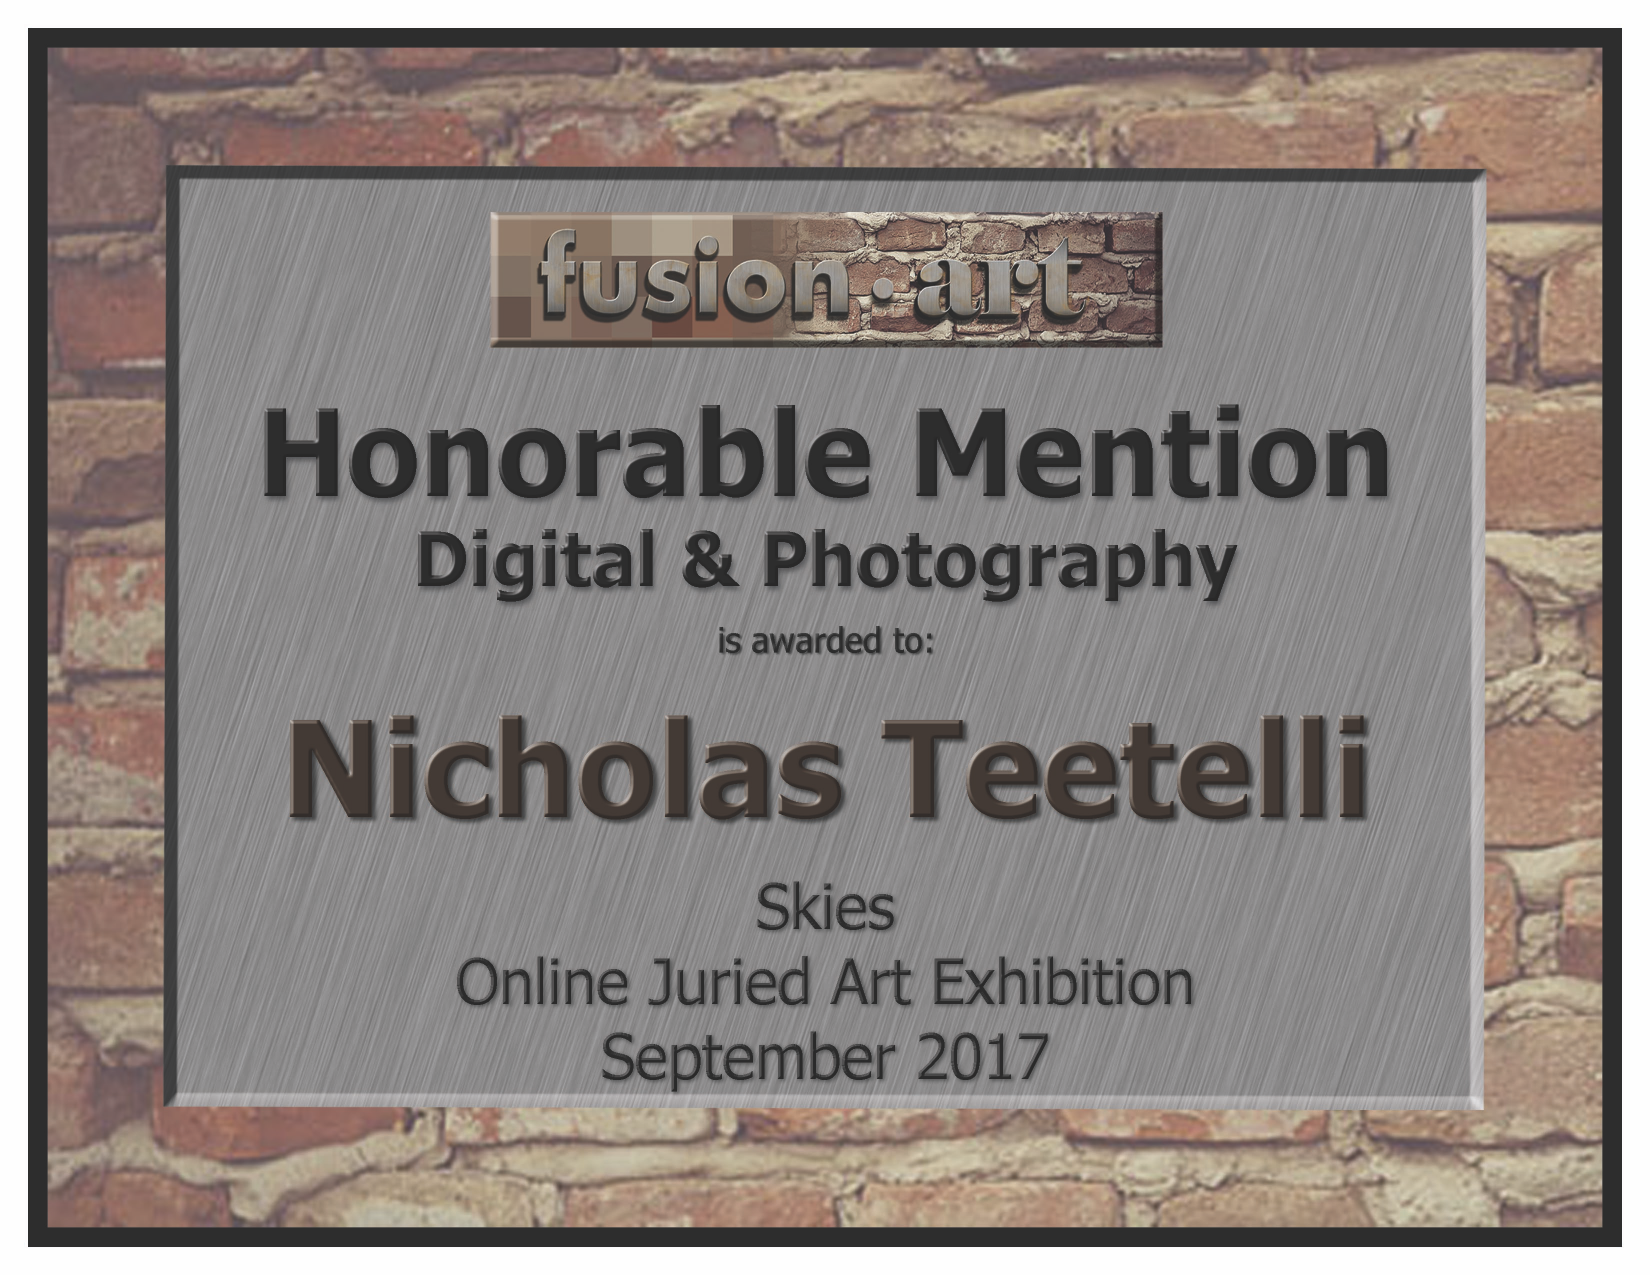 2017-09 Fusion Arts - Skies - Honorable Mention.png